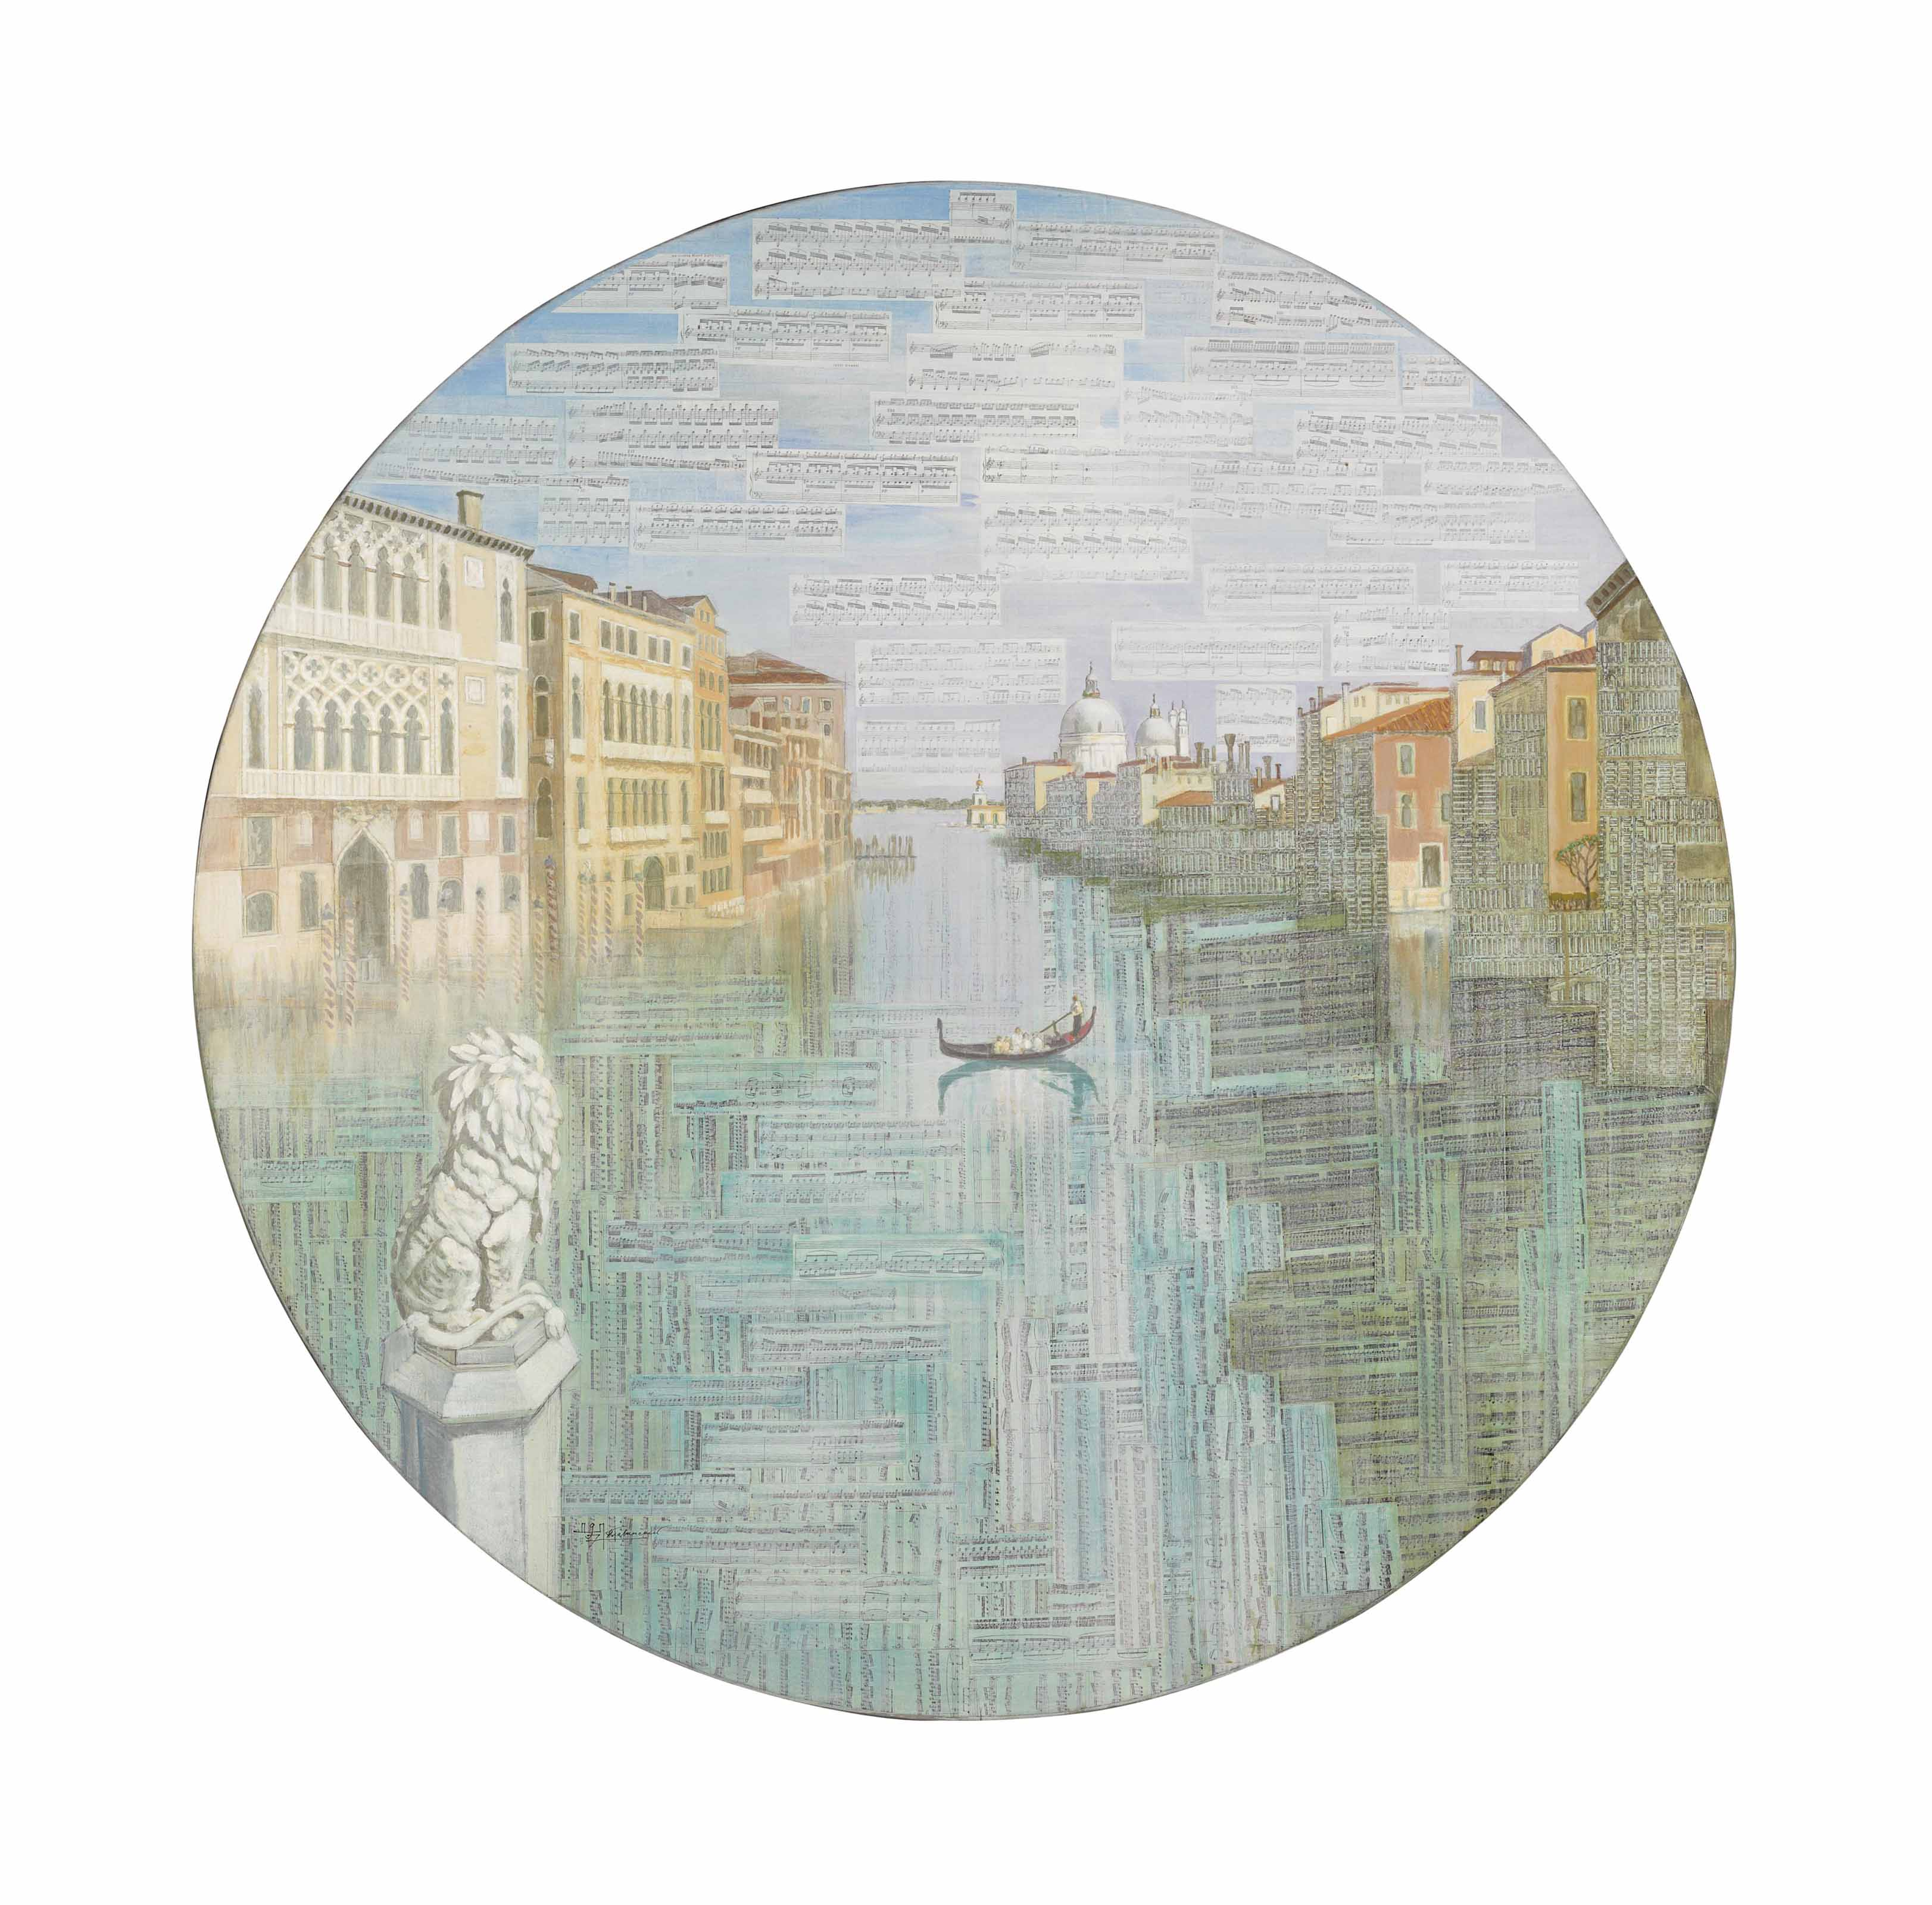 Vivaldi's music upon the Grand Canal